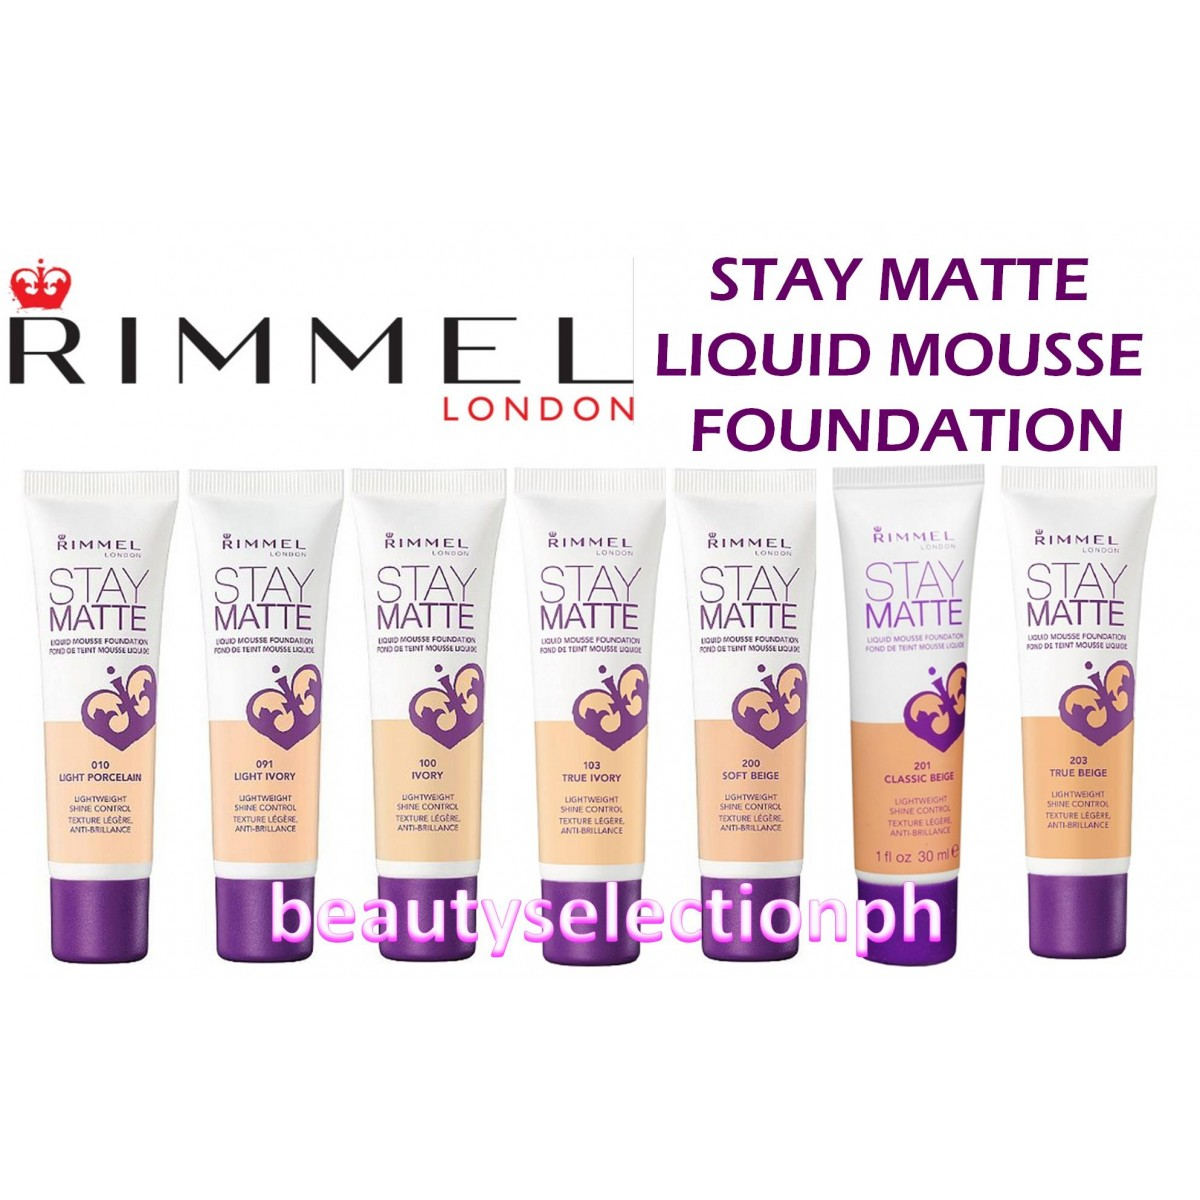 rimmel-stay-matte-mousse-foundation-philippines-1200x1200.jpg